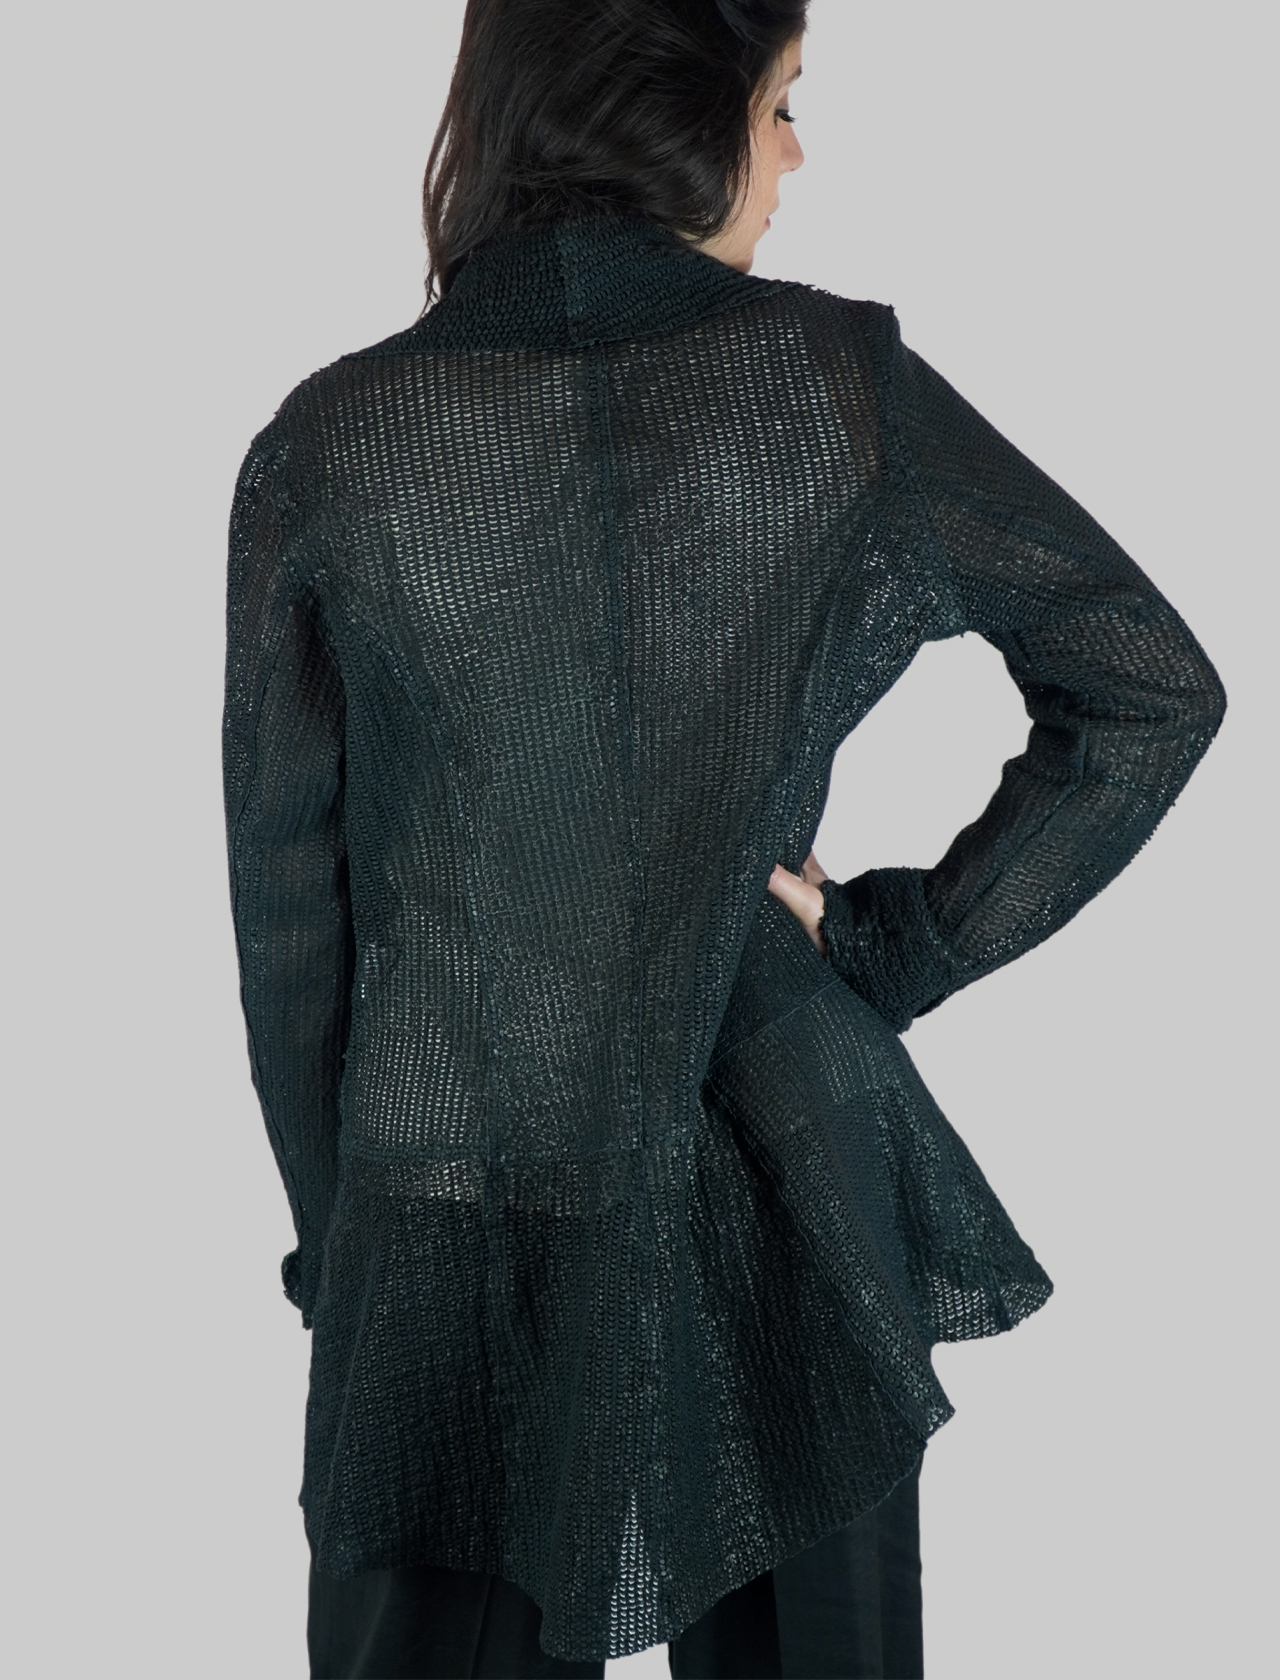 Women's Clothing Blue Perforated Leather Jacket Without Buttons and Long Sleeve Spatarella |  | 2156002